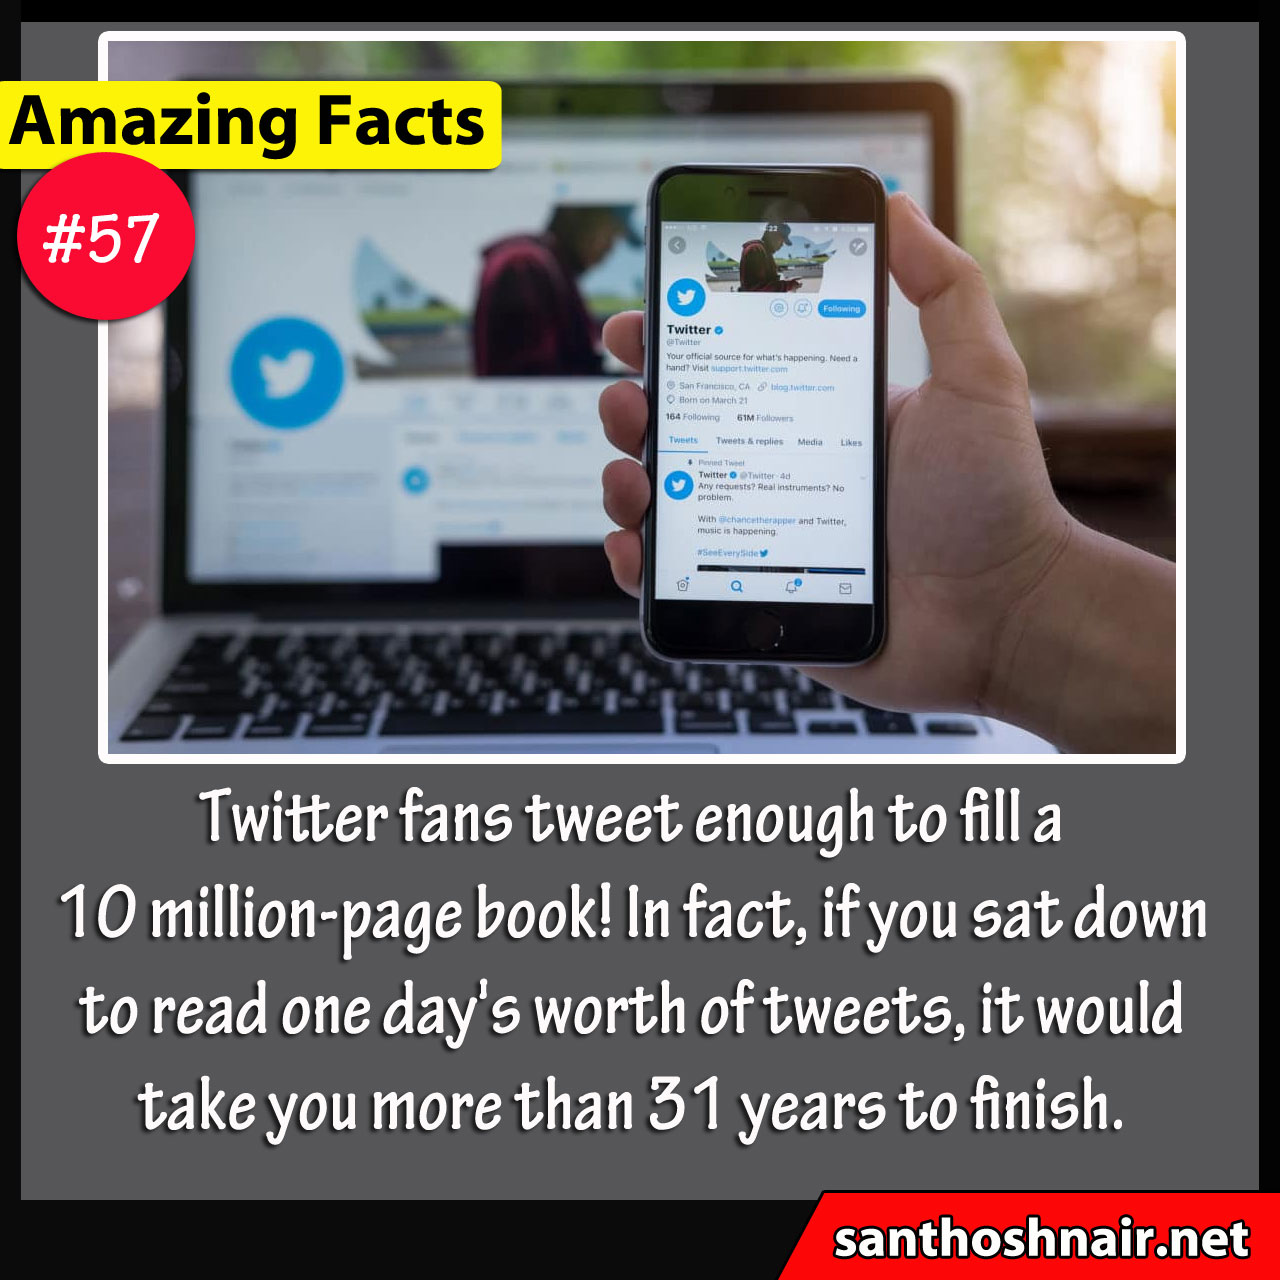 Amazing Facts #57- enough to fill 10 million page book